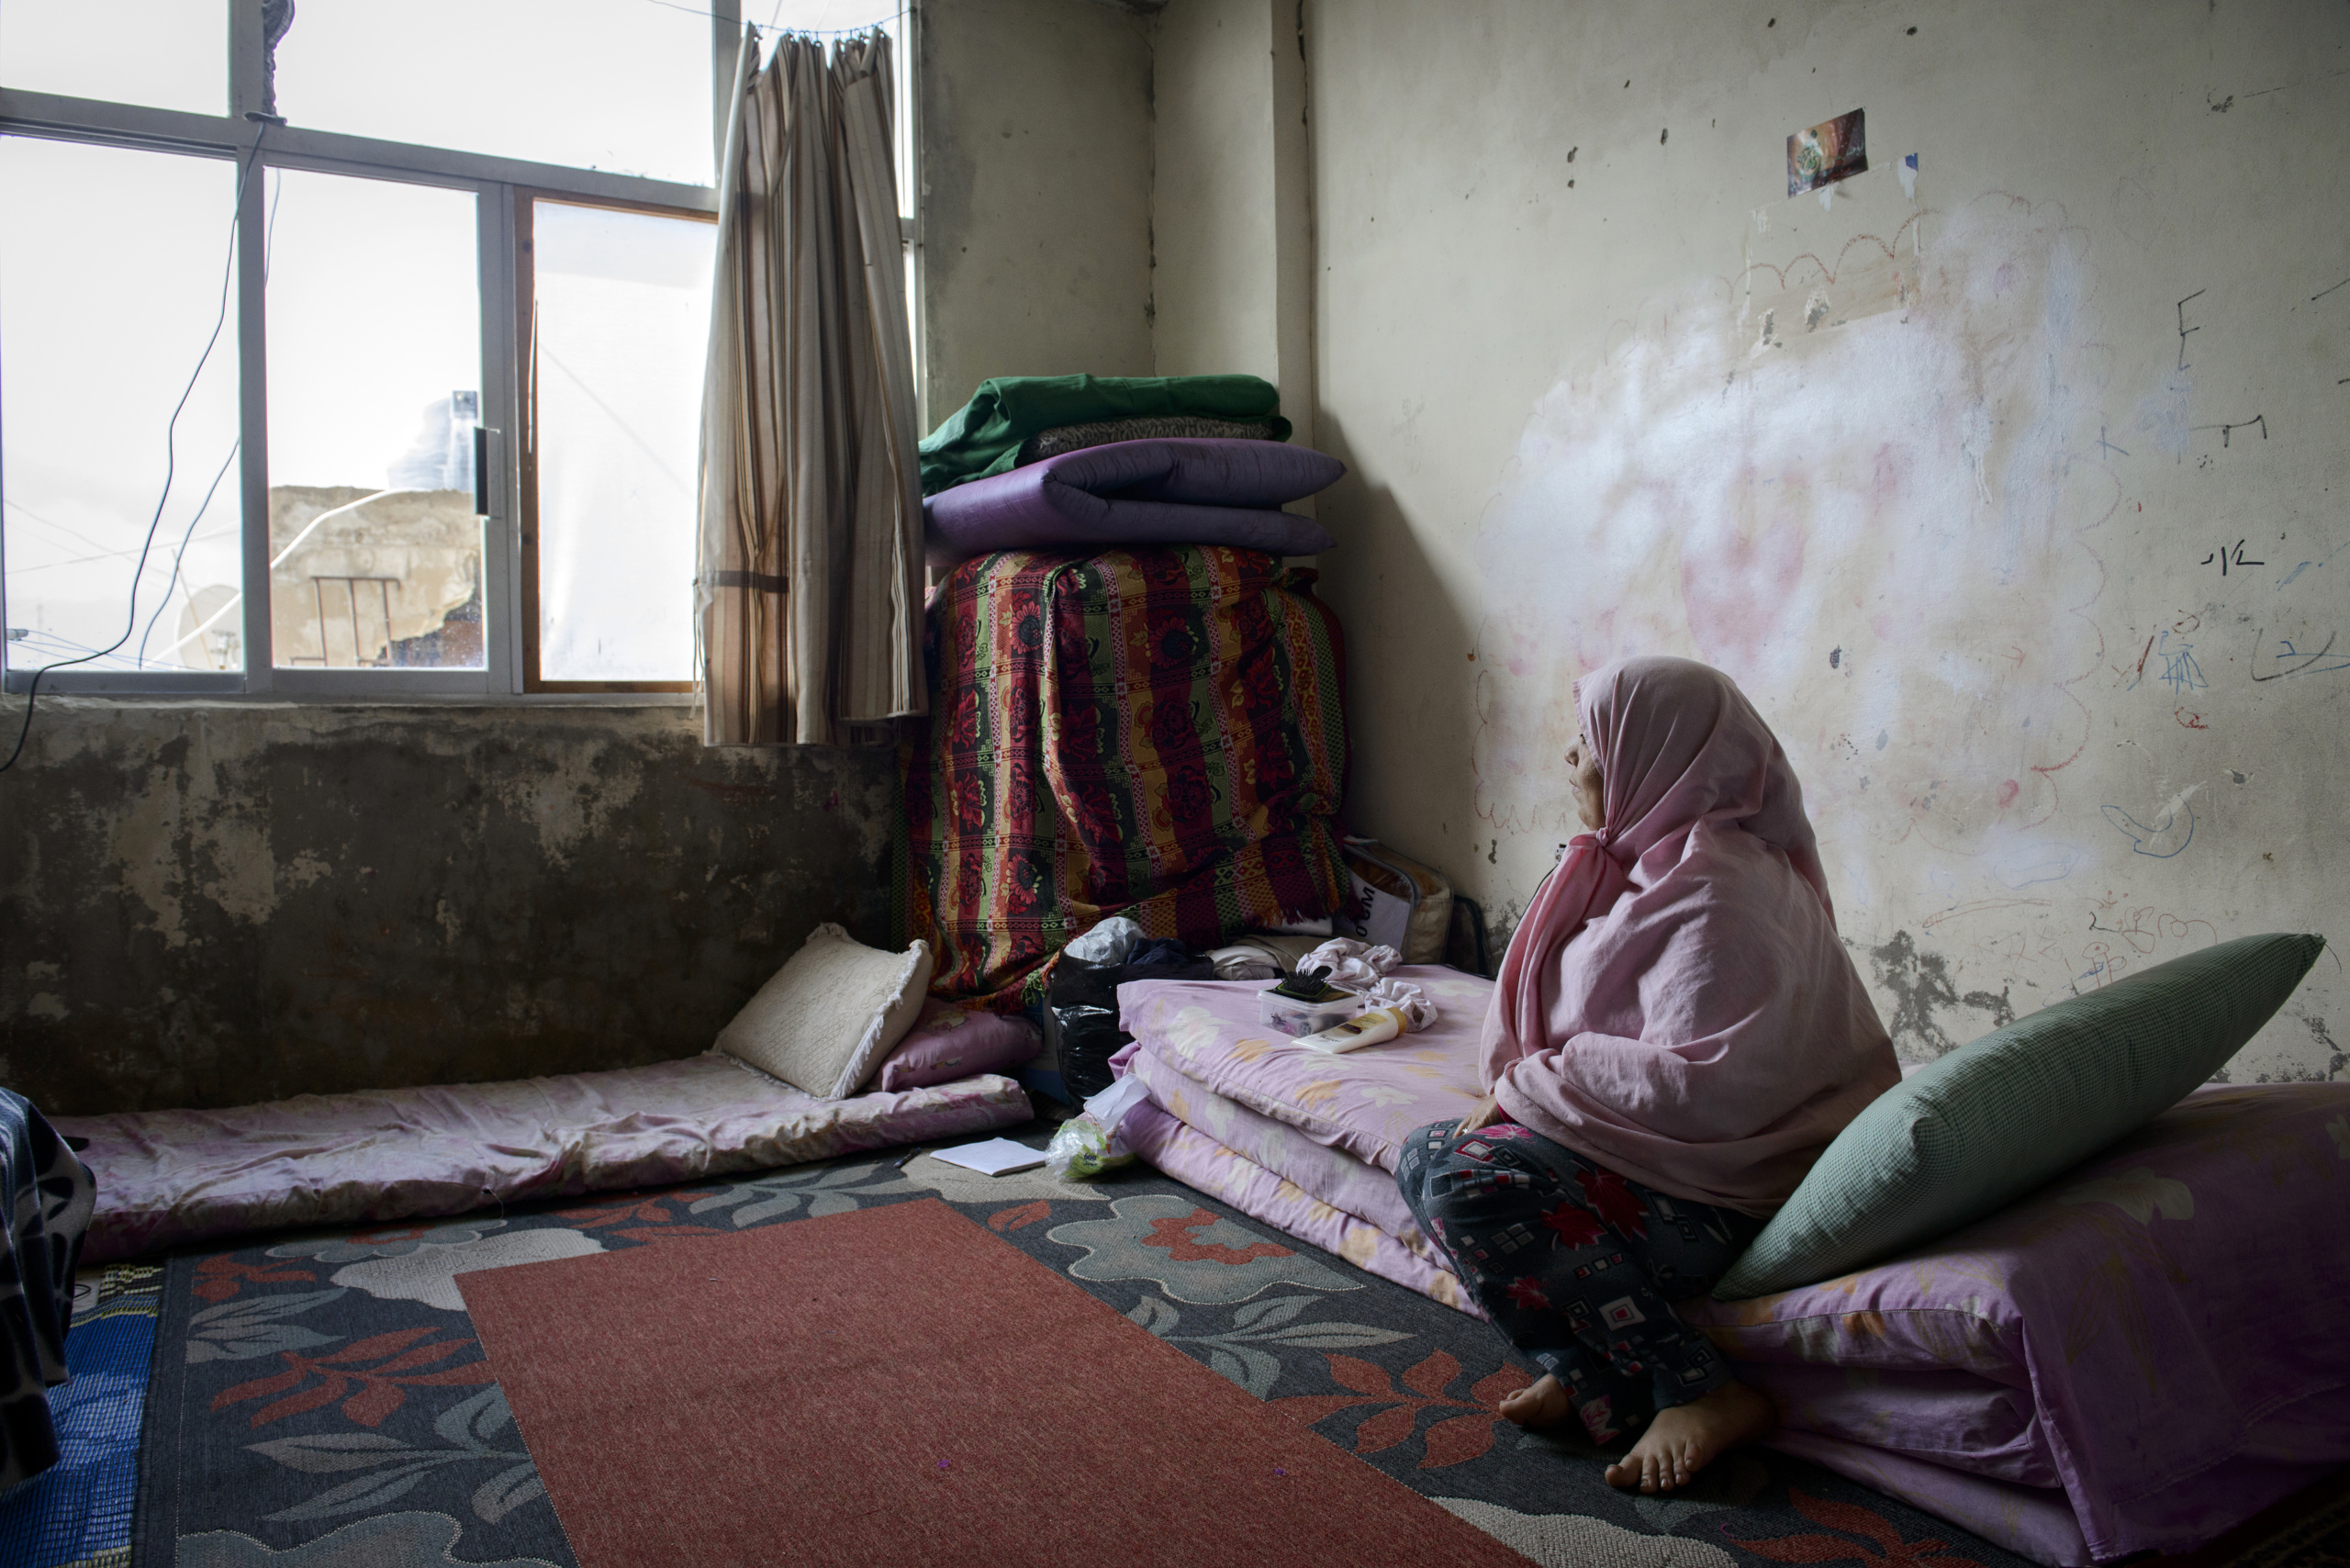 Saida-Lebanon. A woman on his room inside an  abandoned construction site occupied by Syrian refugees.This building is located in the center of Saida . The owner gave access electricity and water free of charge to refugees. . The refugees  try to survive through public subsidies and underpaid labor. the Lebanese government will not allow traditional refugee camps in Lebanon, refugees are finding unusual places to live across the country, including unfinished homes, abandoned shopping malls and schools .......